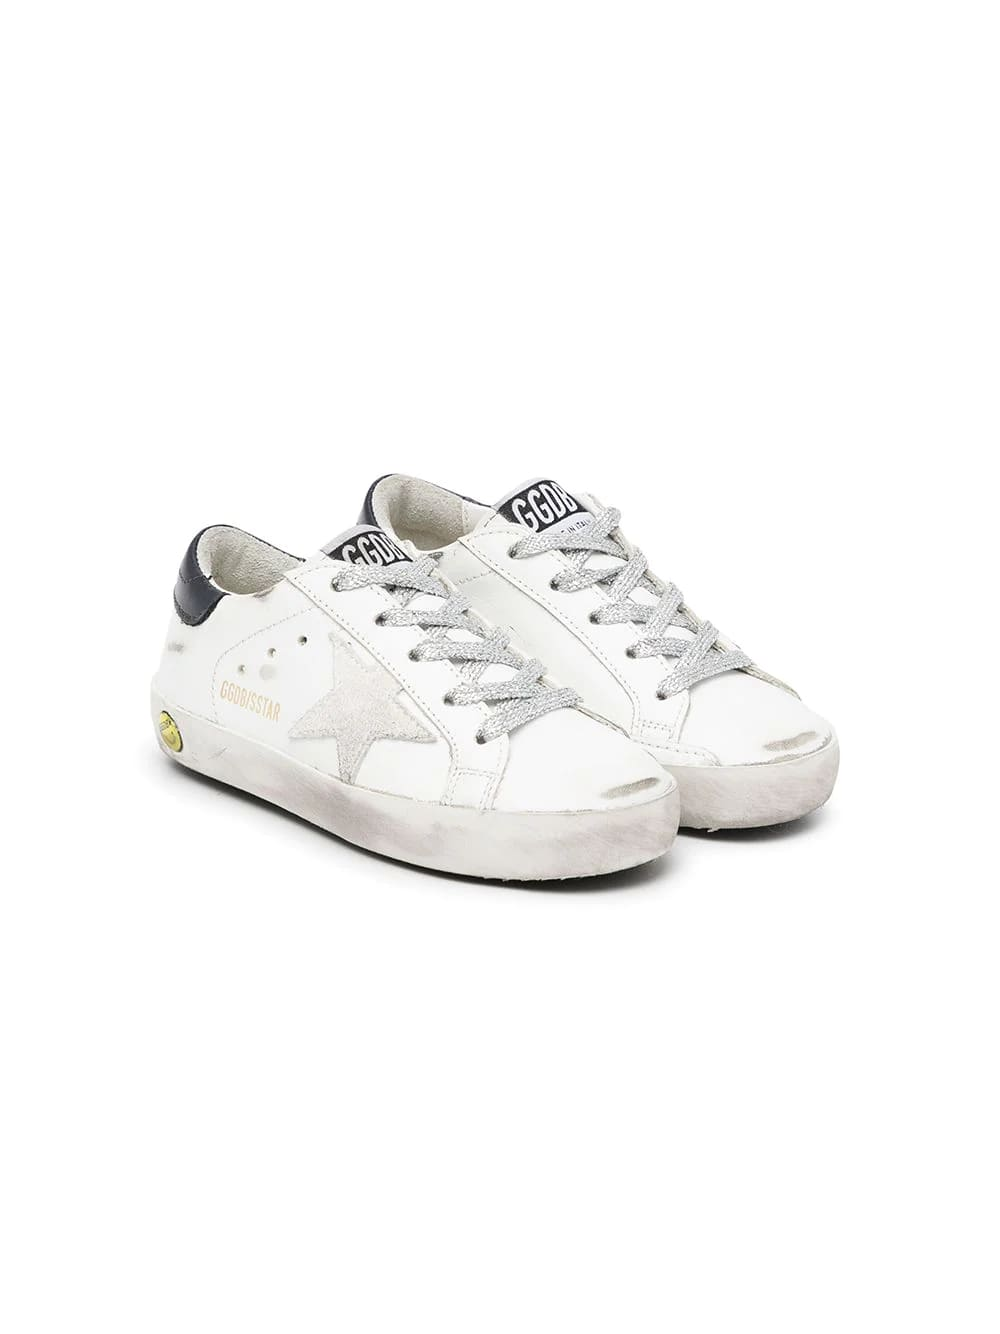 Golden Goose Kids White And Navy Blue Super-star Sneakers With Lurex Laces